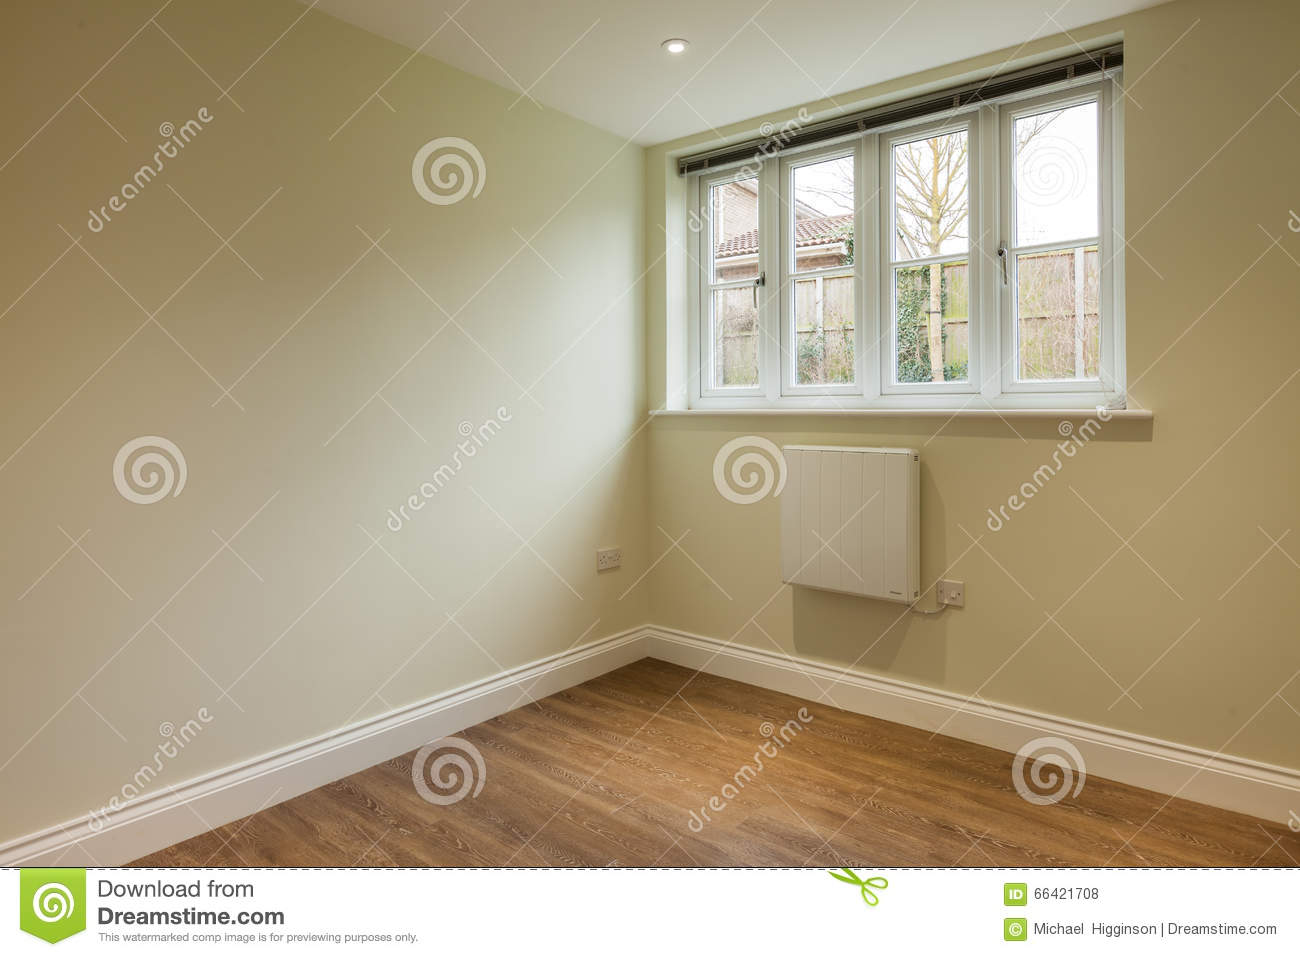 Small Room Stock Photo Image Of Interior Home Apartment 66421708